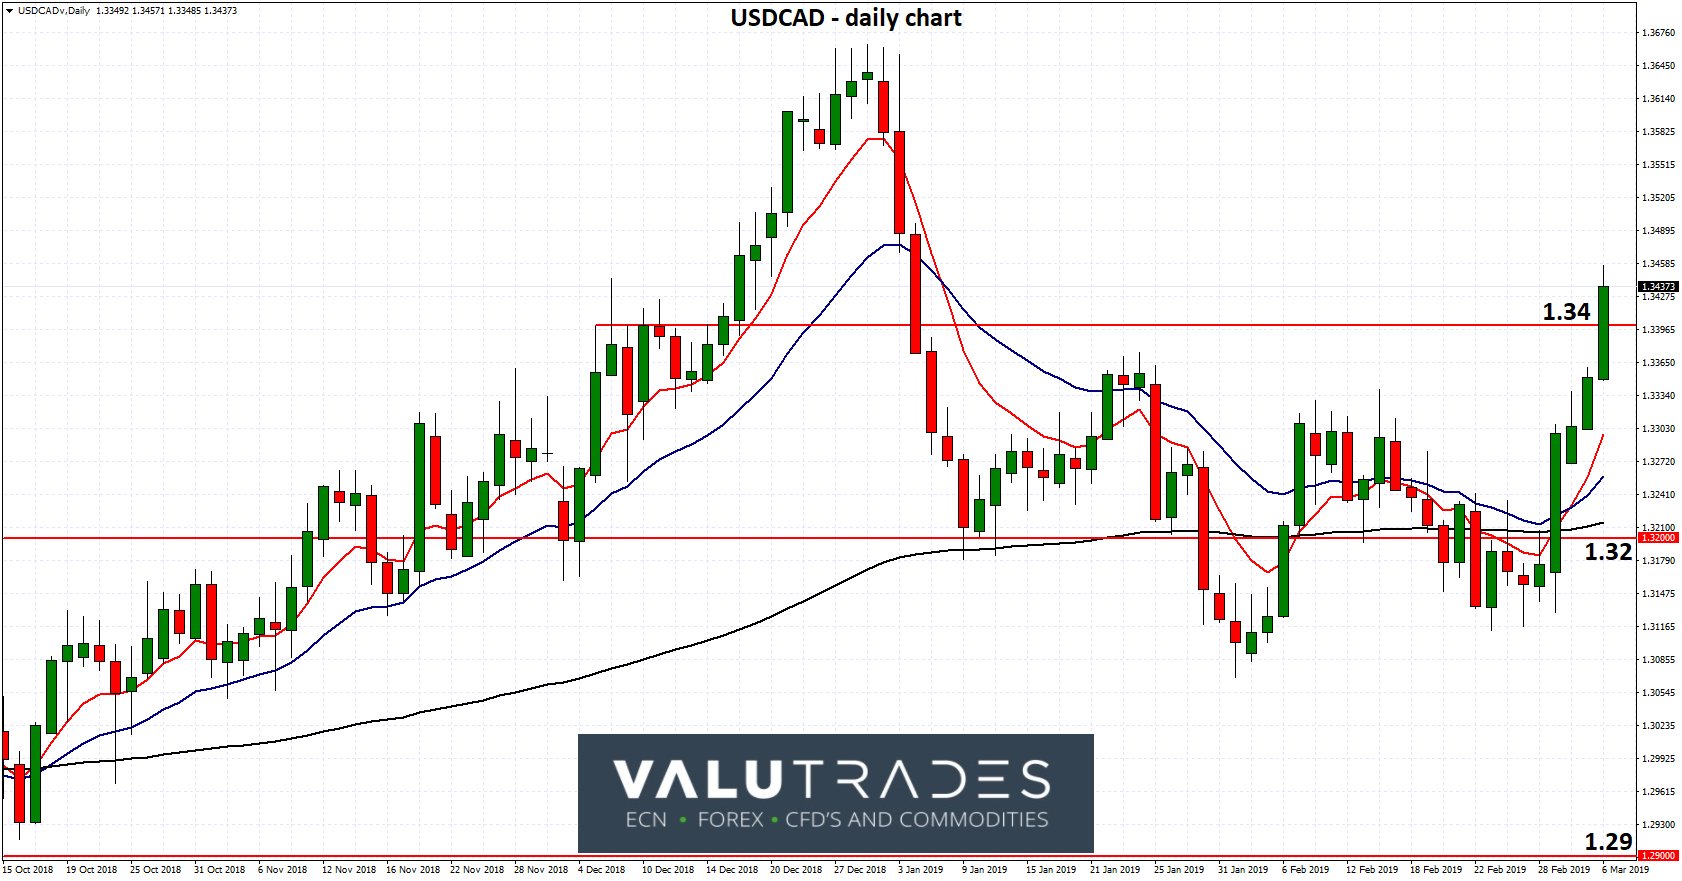 USDCAD - Surges to Two Month High above 1.34 after BOC Holds Rates